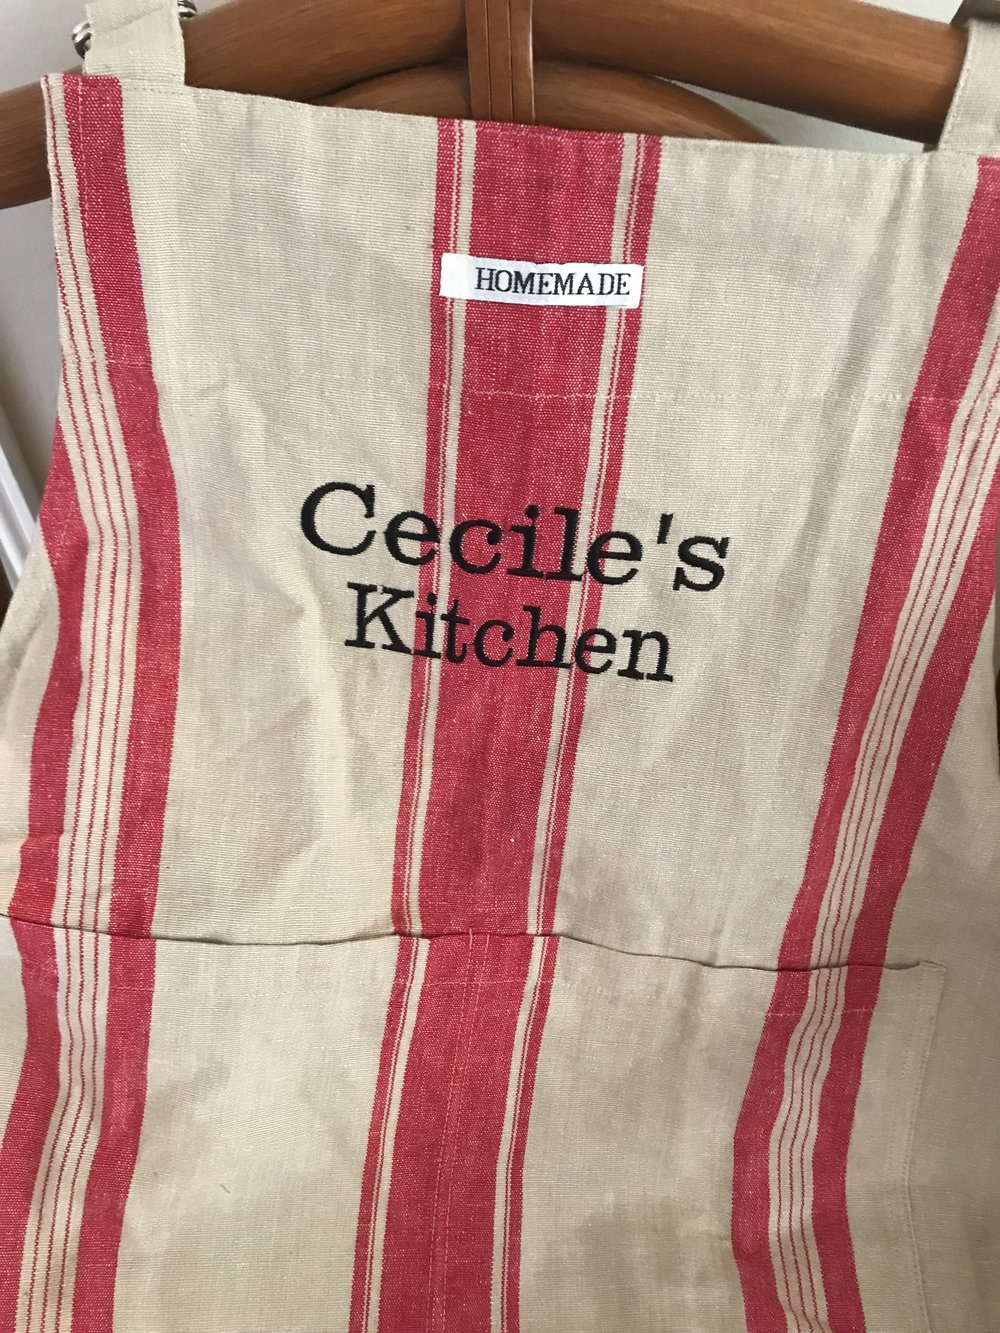 Cecile Kitchen Apron Gift from Tina.jpg*.jpg